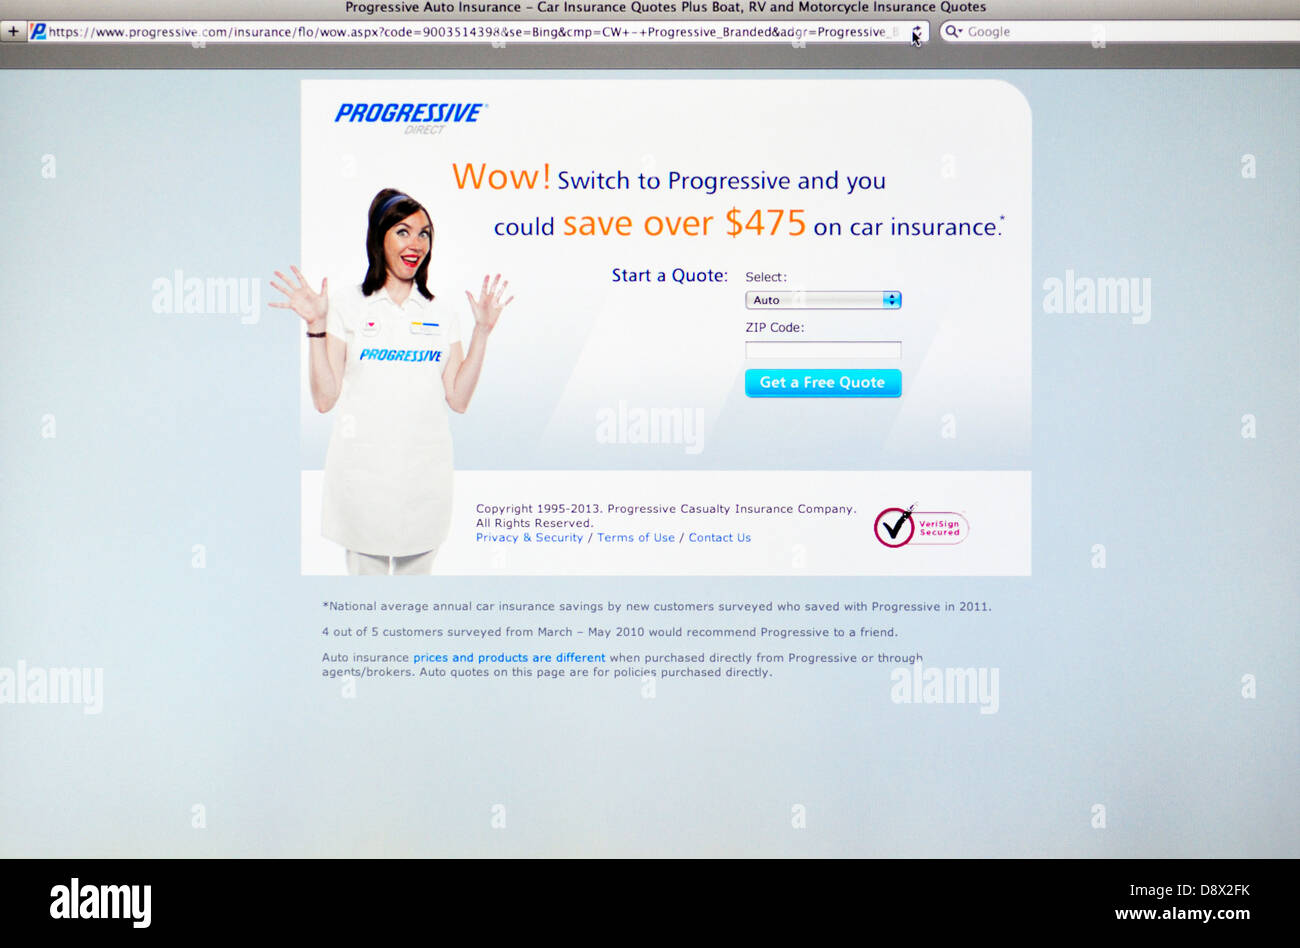 Progressive Insurance Quote Progressive Auto Insurance Website Stock Photo Royalty Free Image